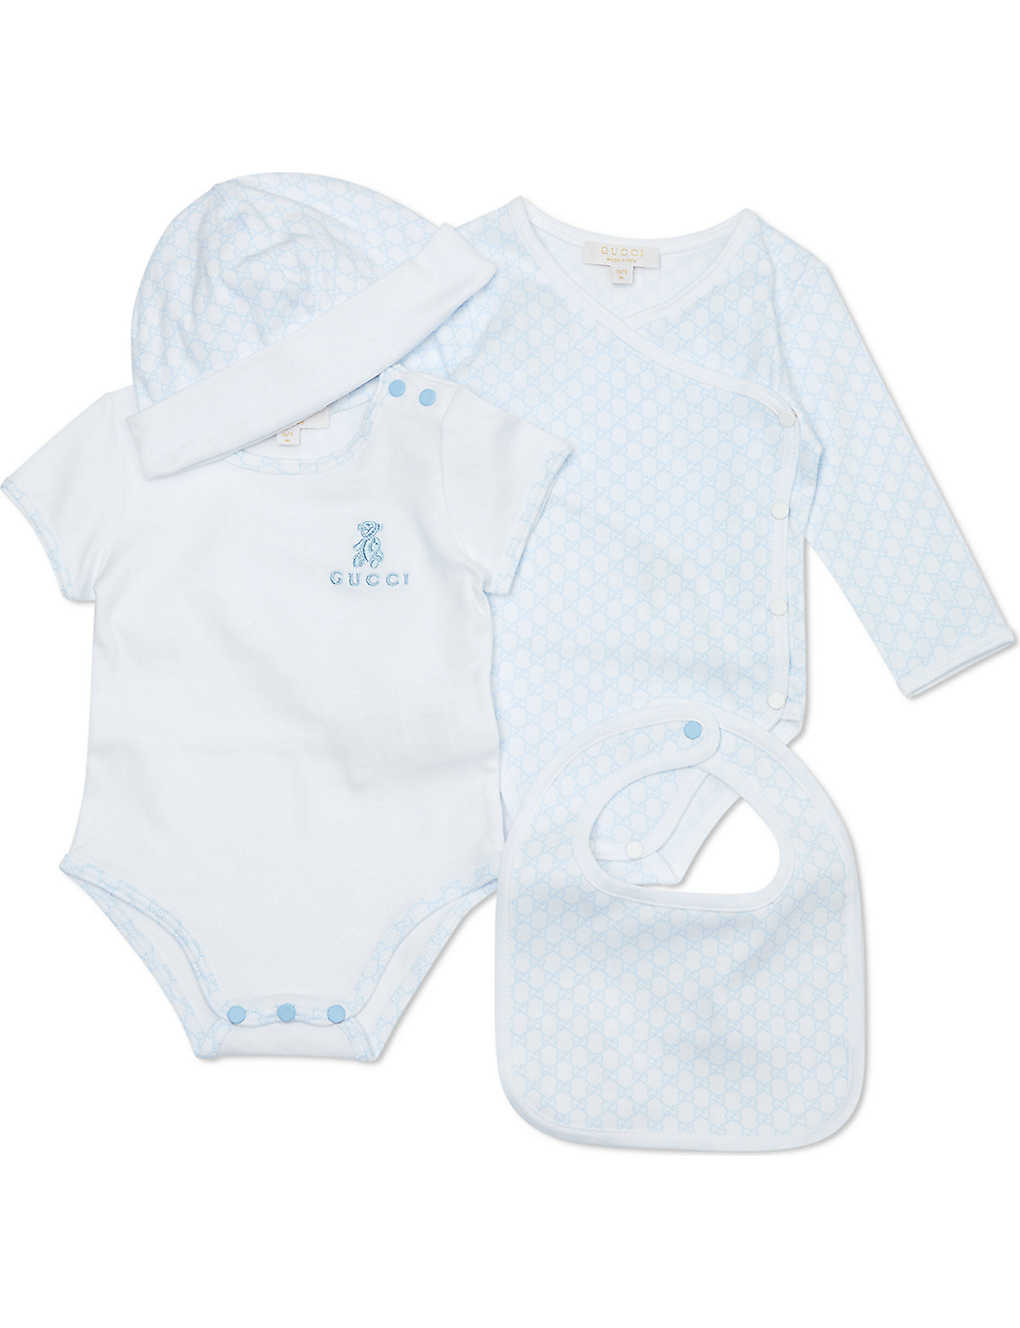 620c94f70eb2 GUCCI - Baby-grow set 0-12 months